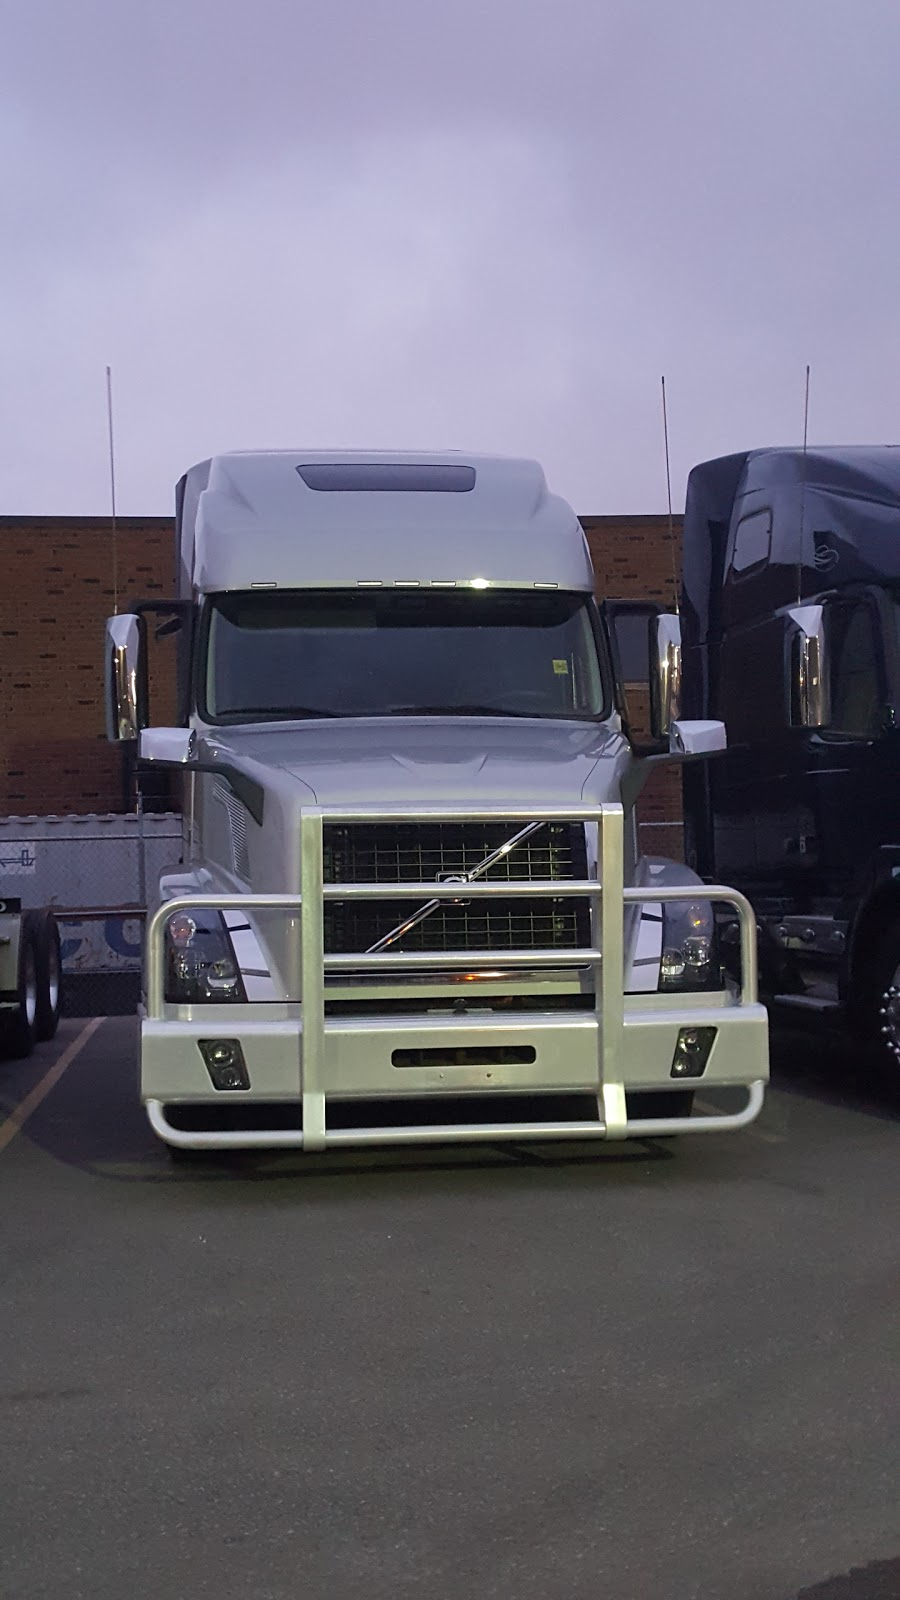 Arrow Truck Sales Canada | store | 1285 Shawson Dr, Mississauga, ON L4W 1C4, Canada | 9055643411 OR +1 905-564-3411